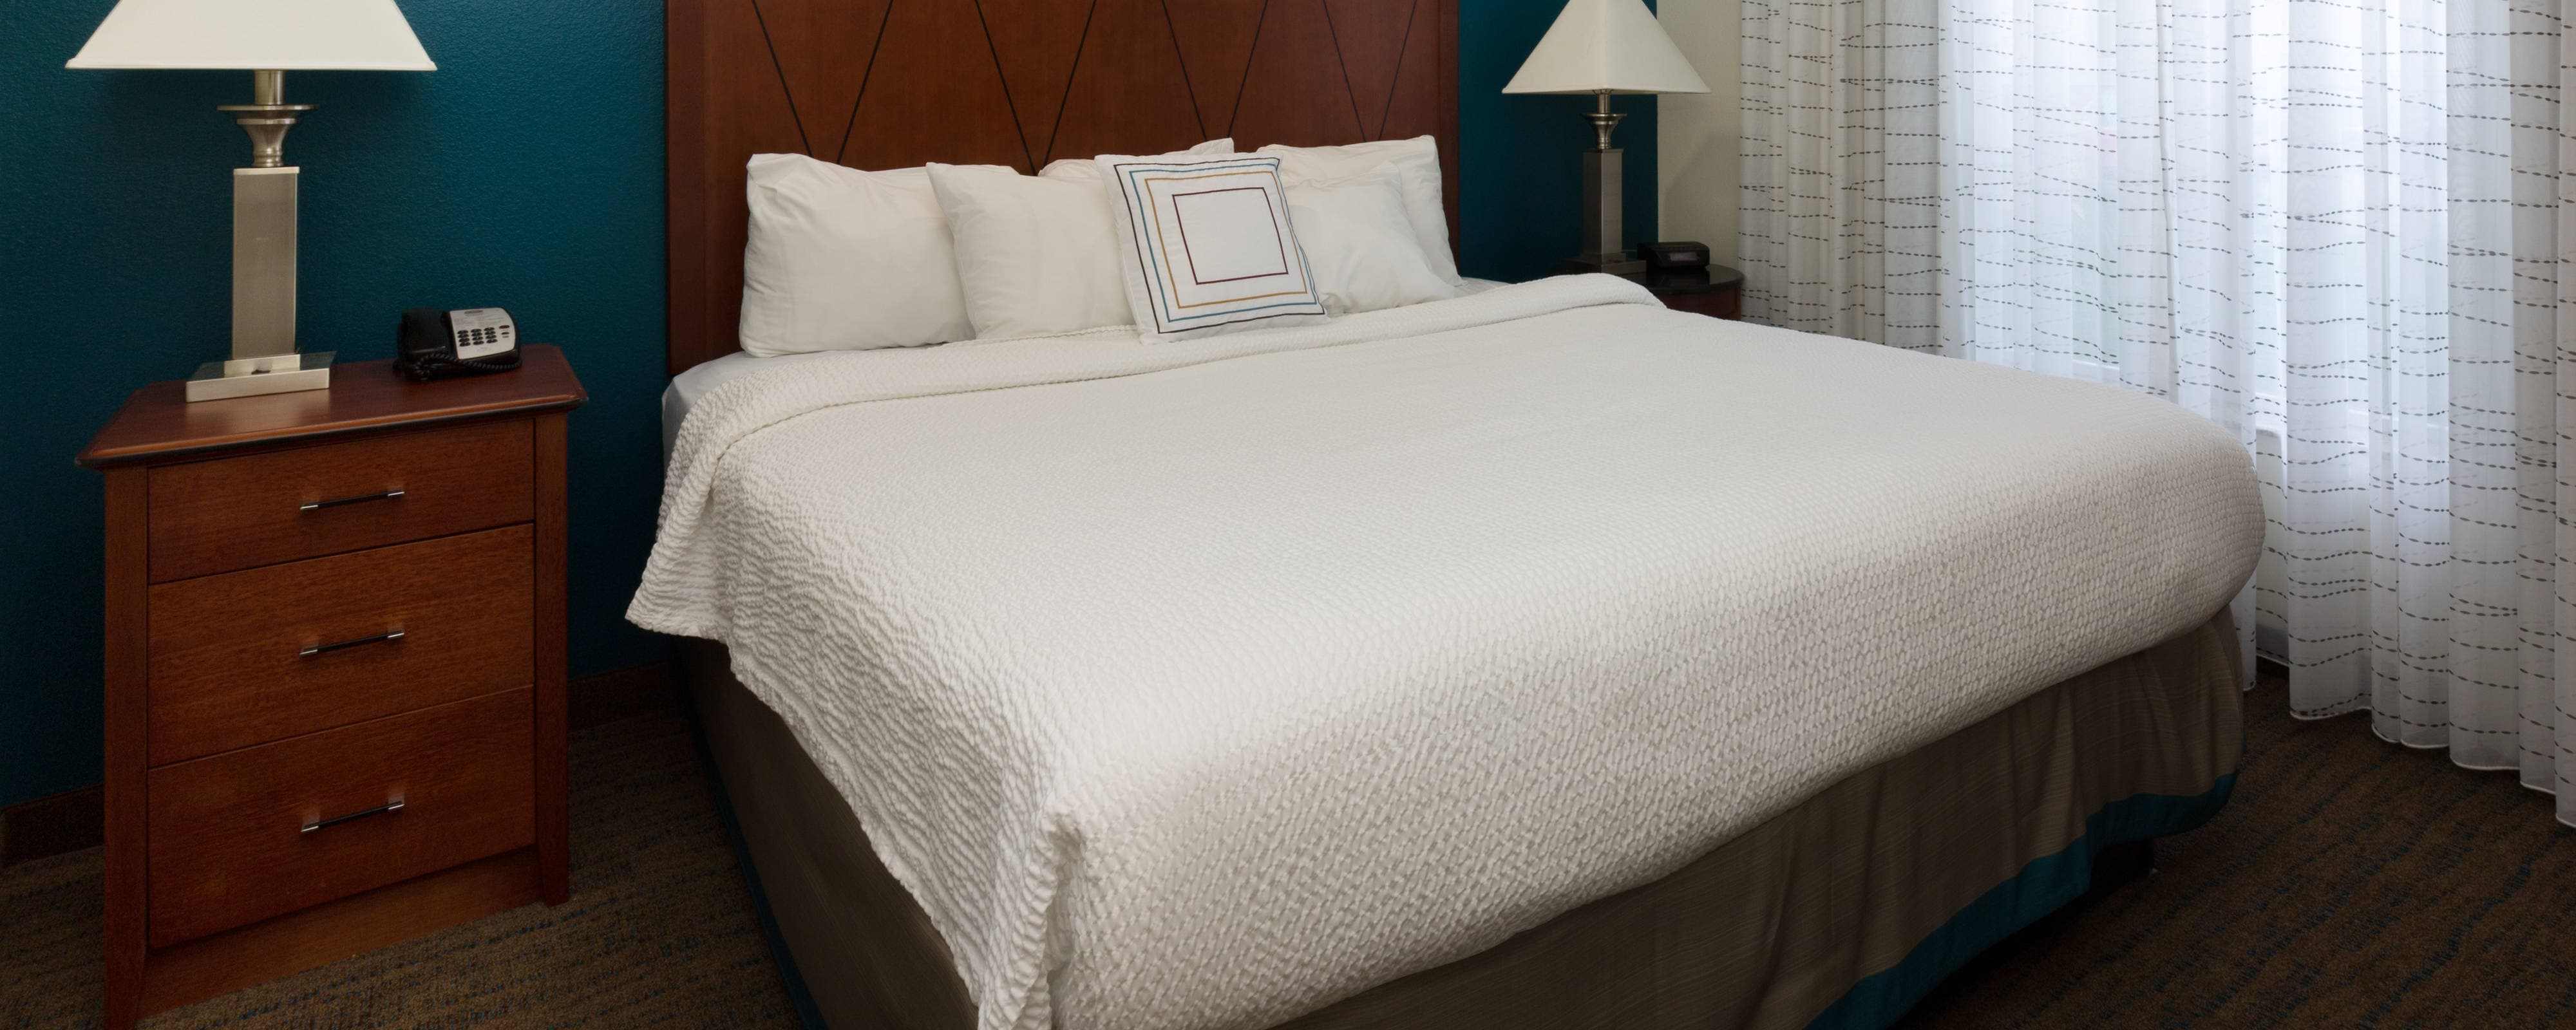 Extended Stay Hotels In Baton Rouge Louisiana Residence Inn Baton